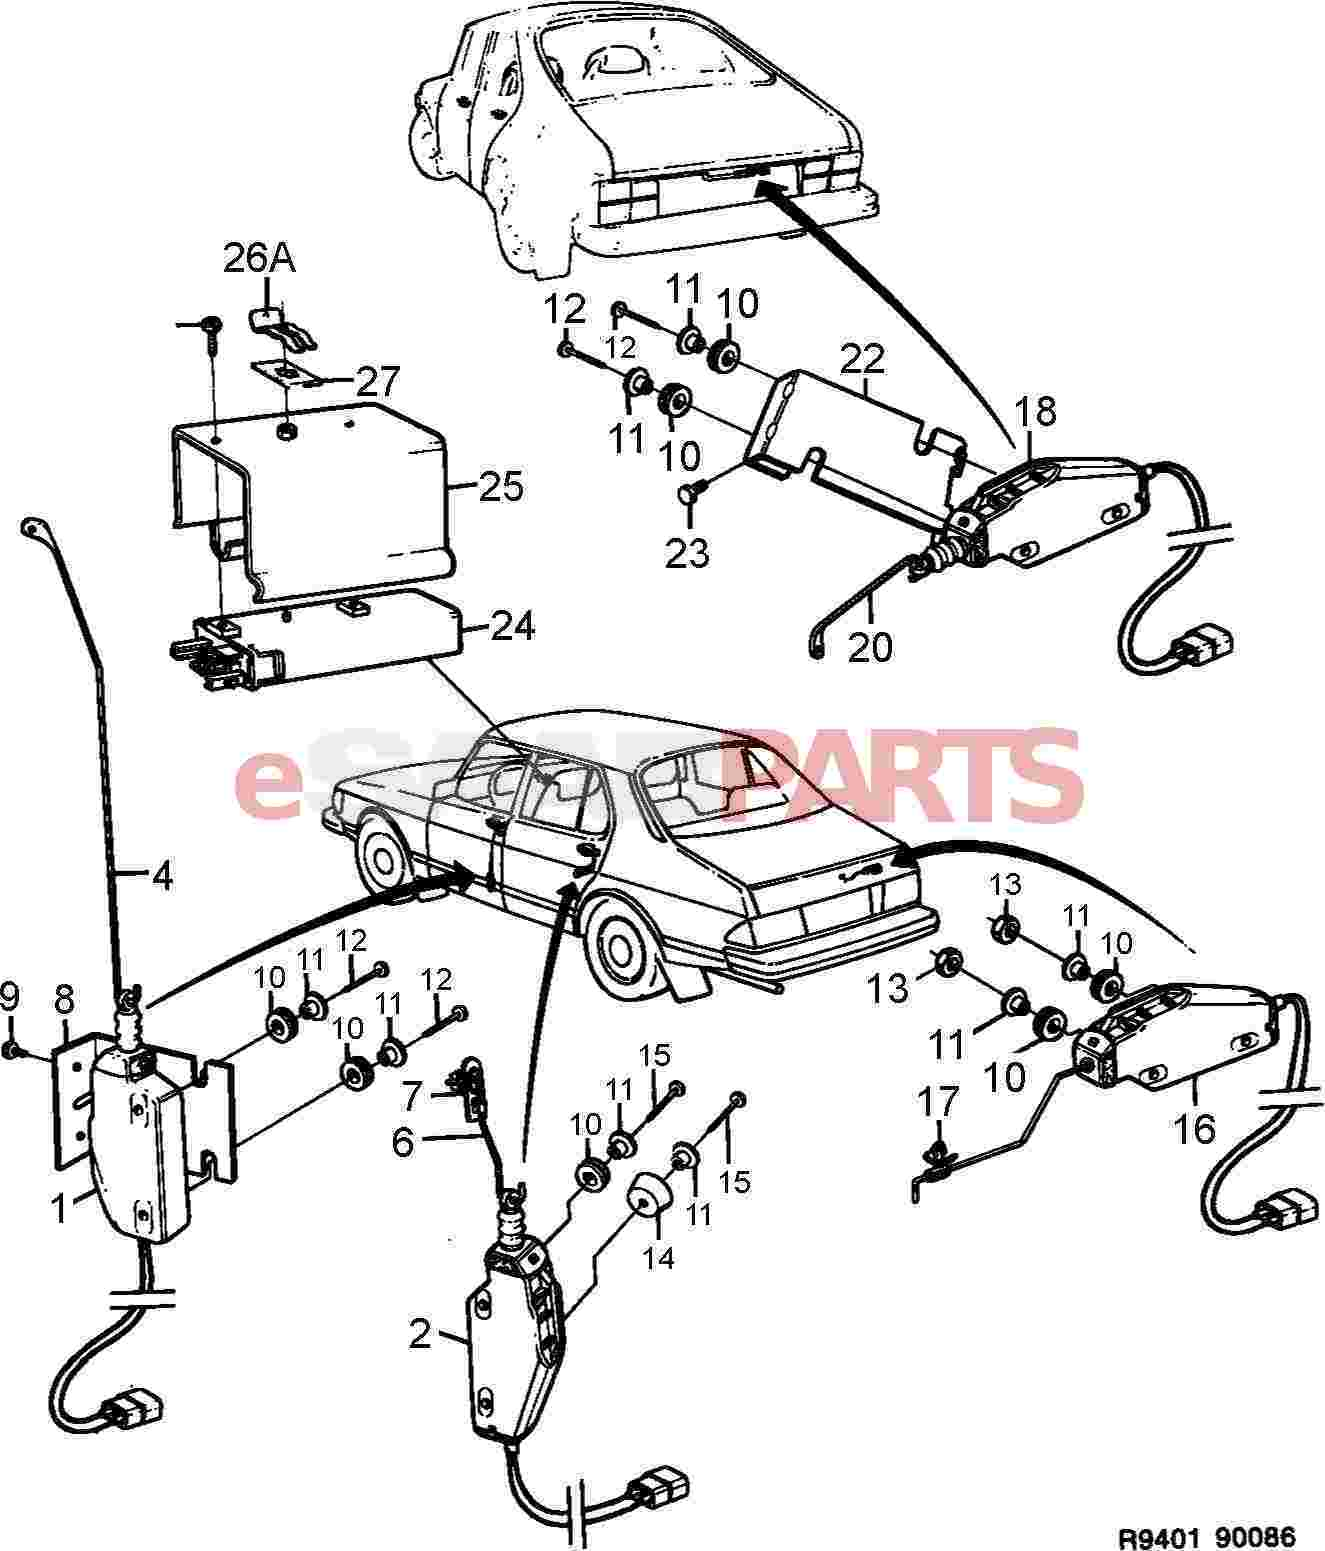 Saab 900 Central Locking Wiring Diagram